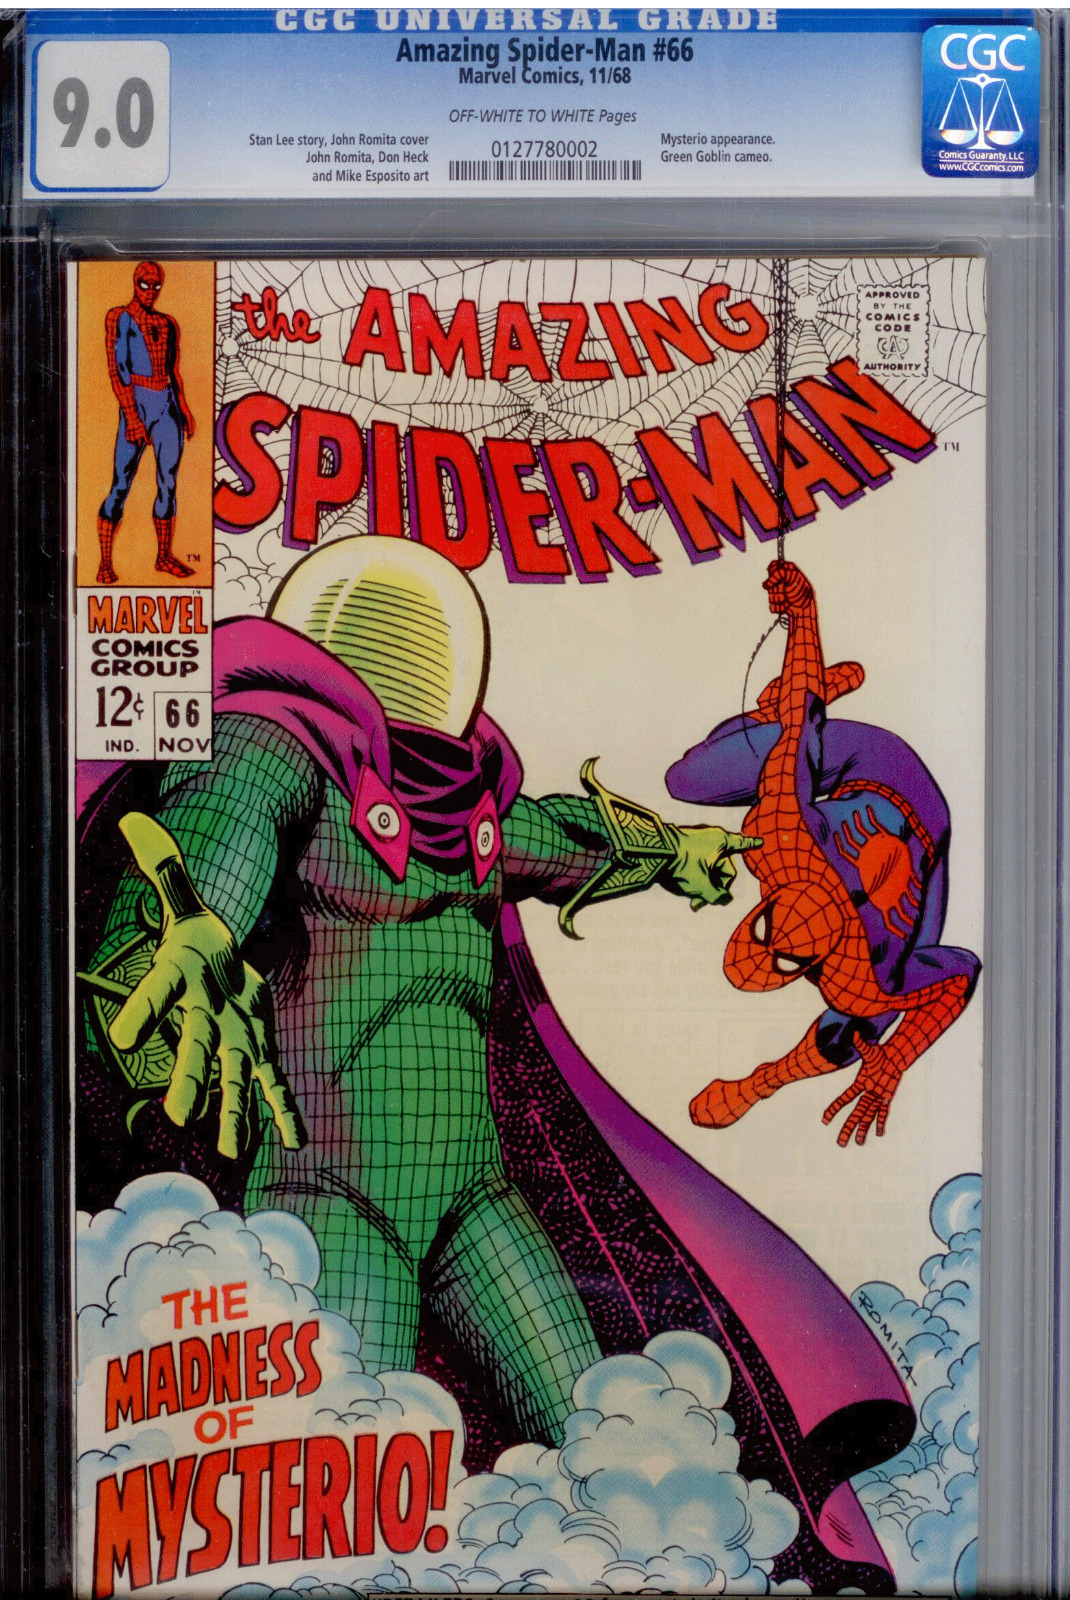 Amazing Spider-Man#66 CGC 9 0 OW/WHITE Mysterio - MOVIE 2019